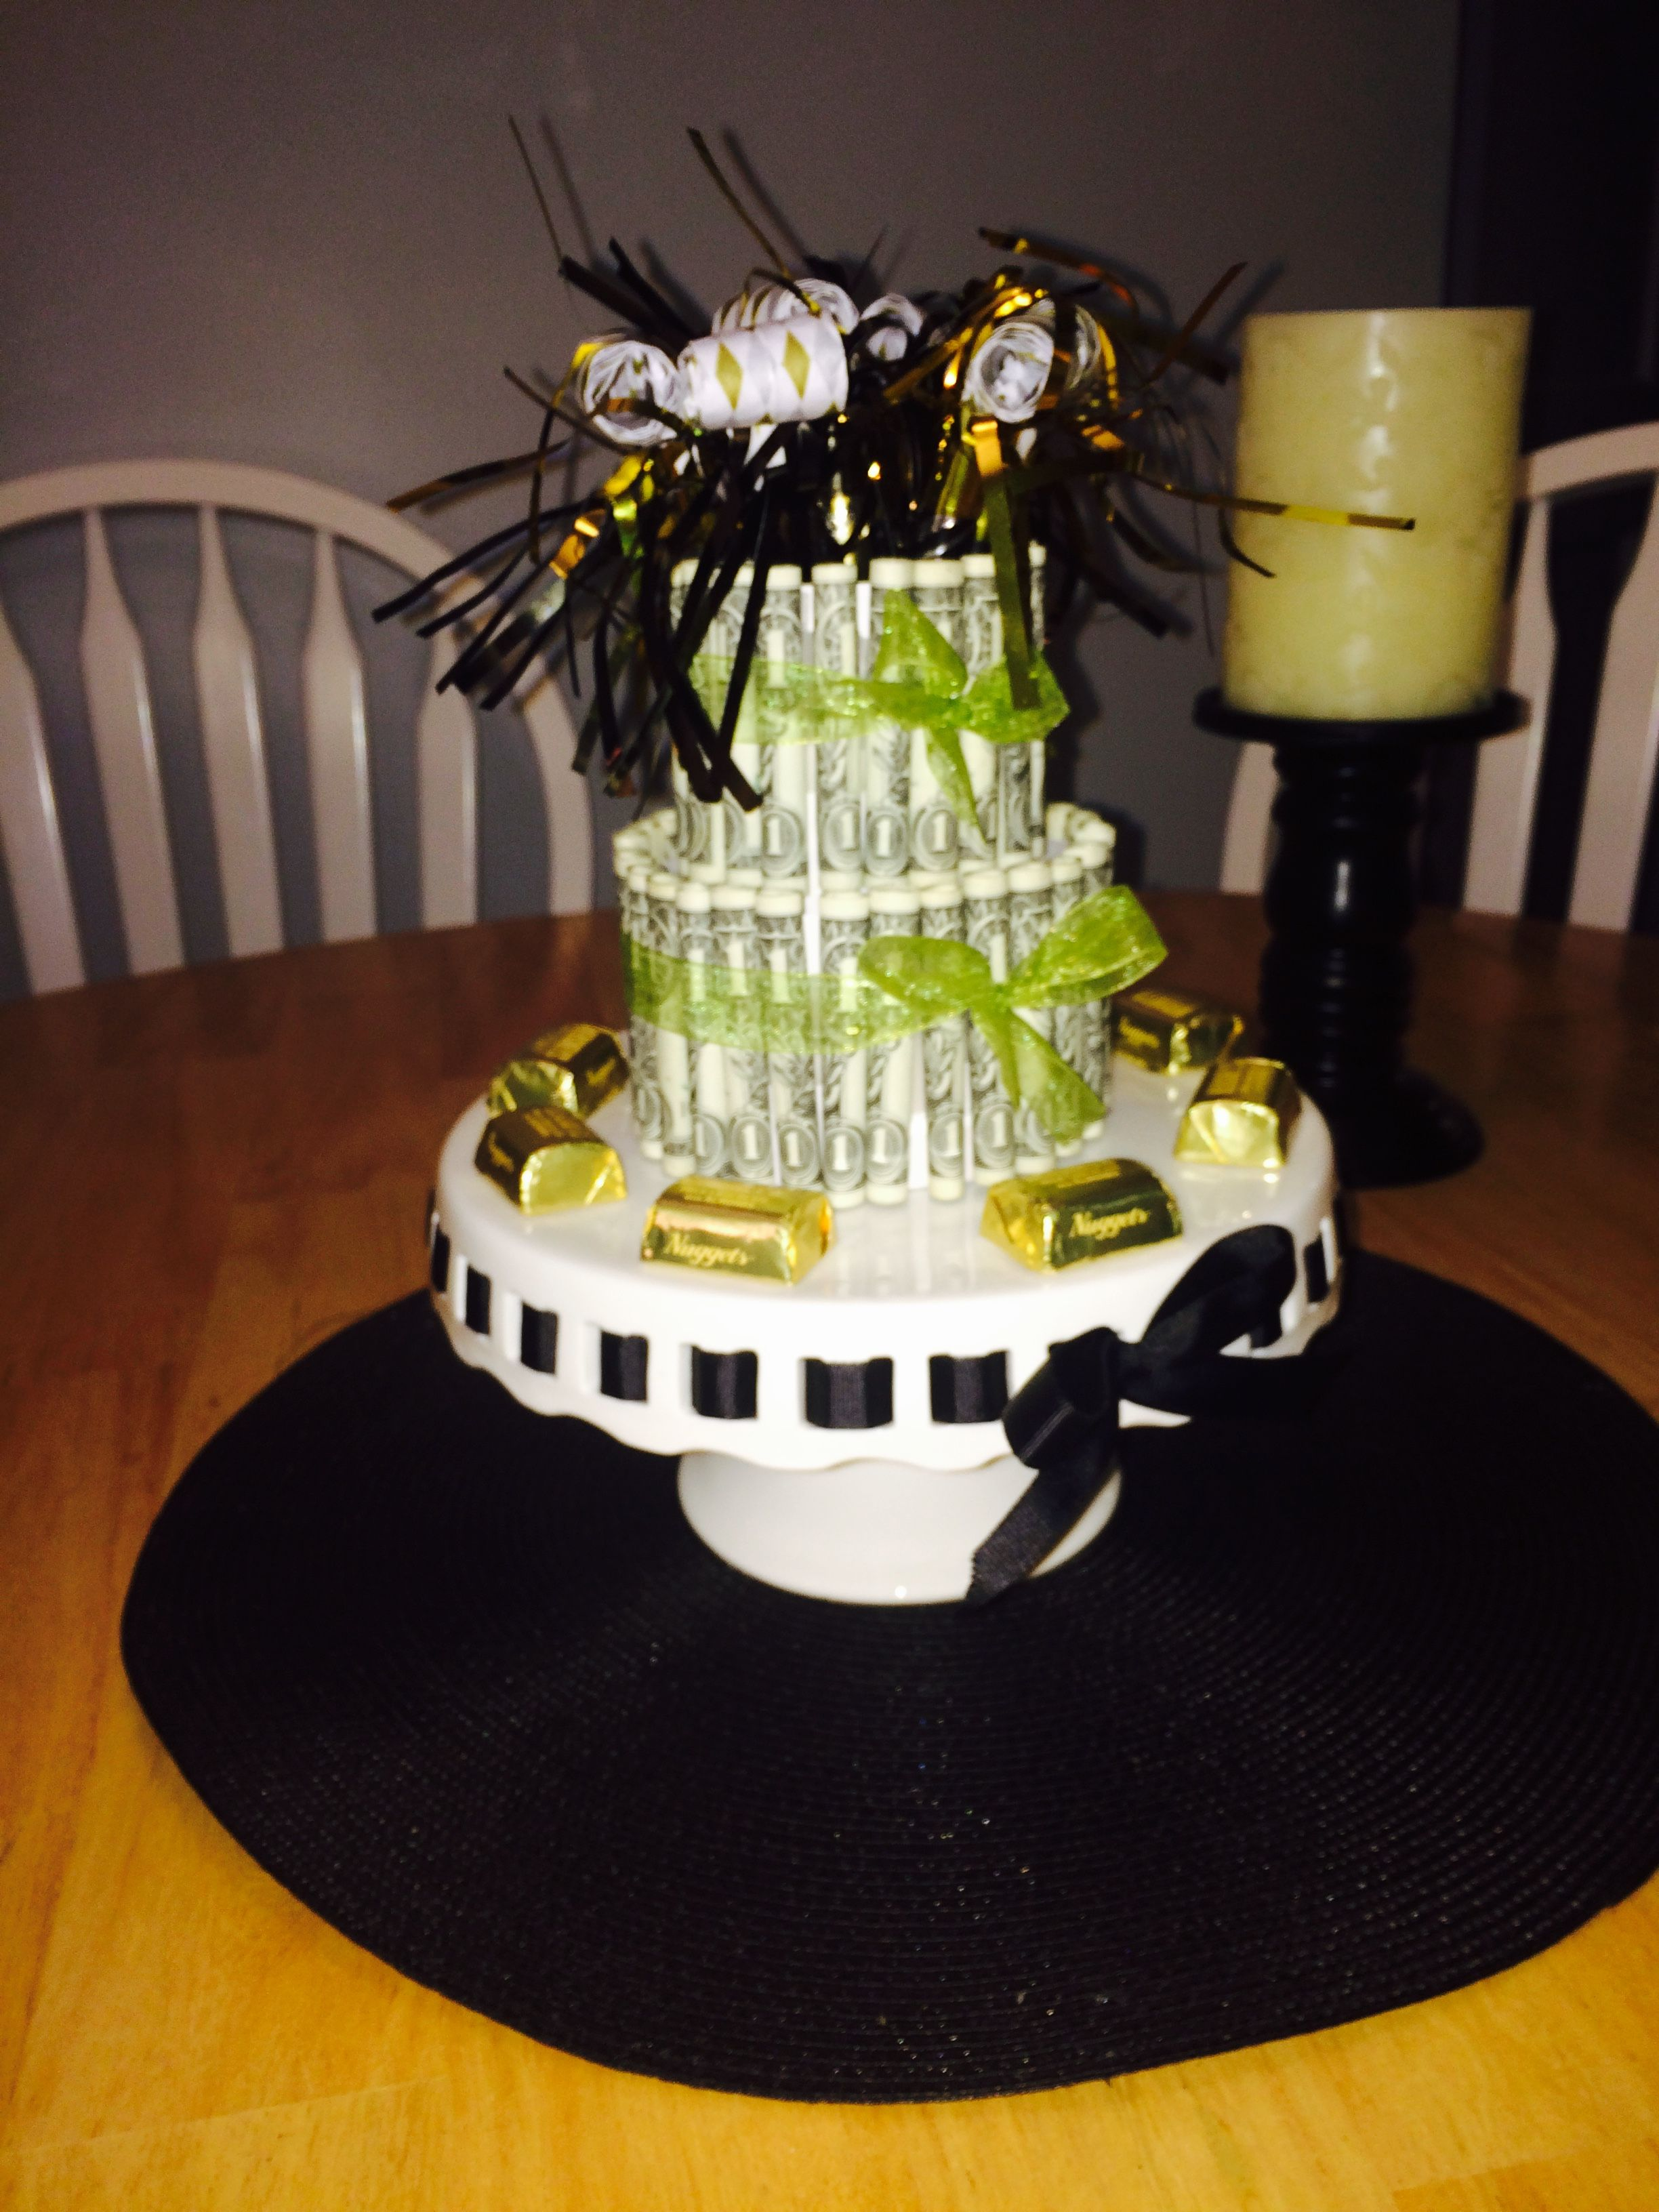 A 2 Tier 50th Birthday Cake Made From One Dollar Bills 30 On The Bottom And 20 Top Finish Look Off With Hershey Nuggets Encircling